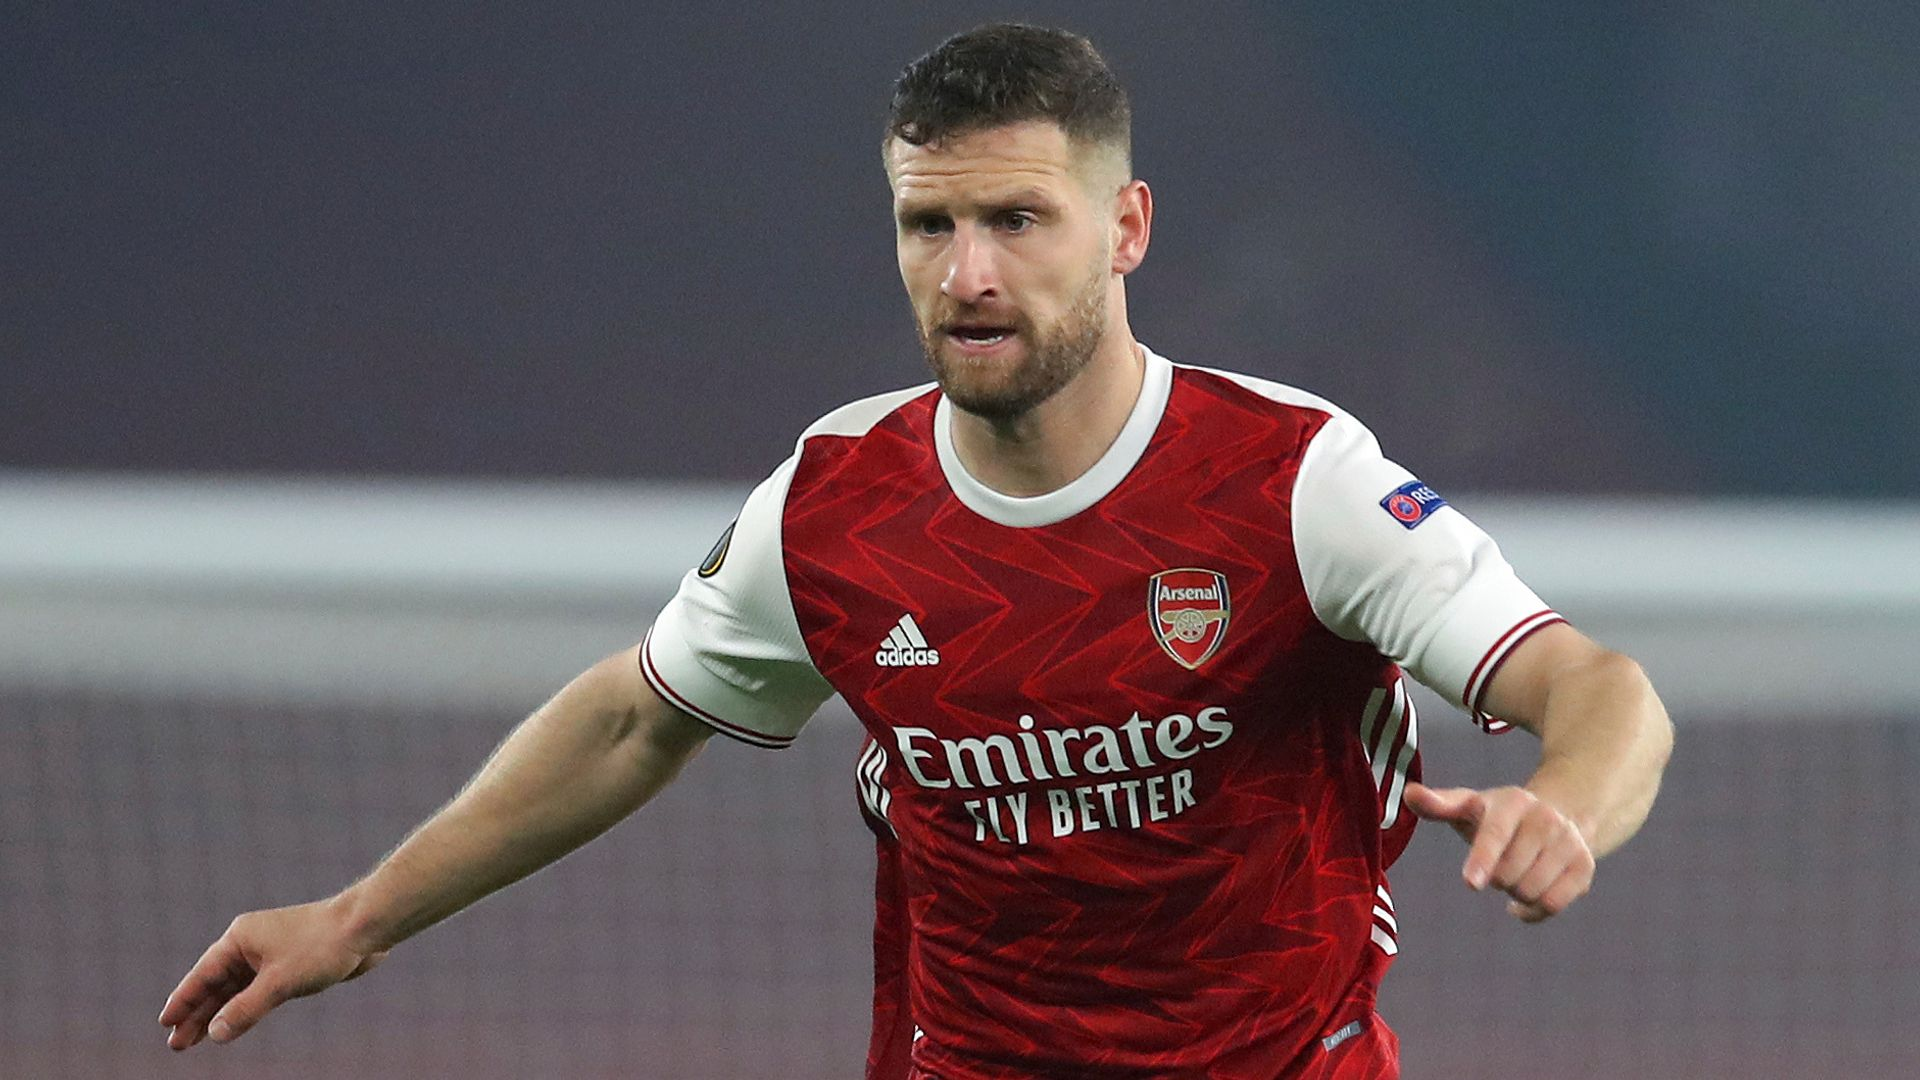 Arsenal confirm Mustafi leaves for Schalke